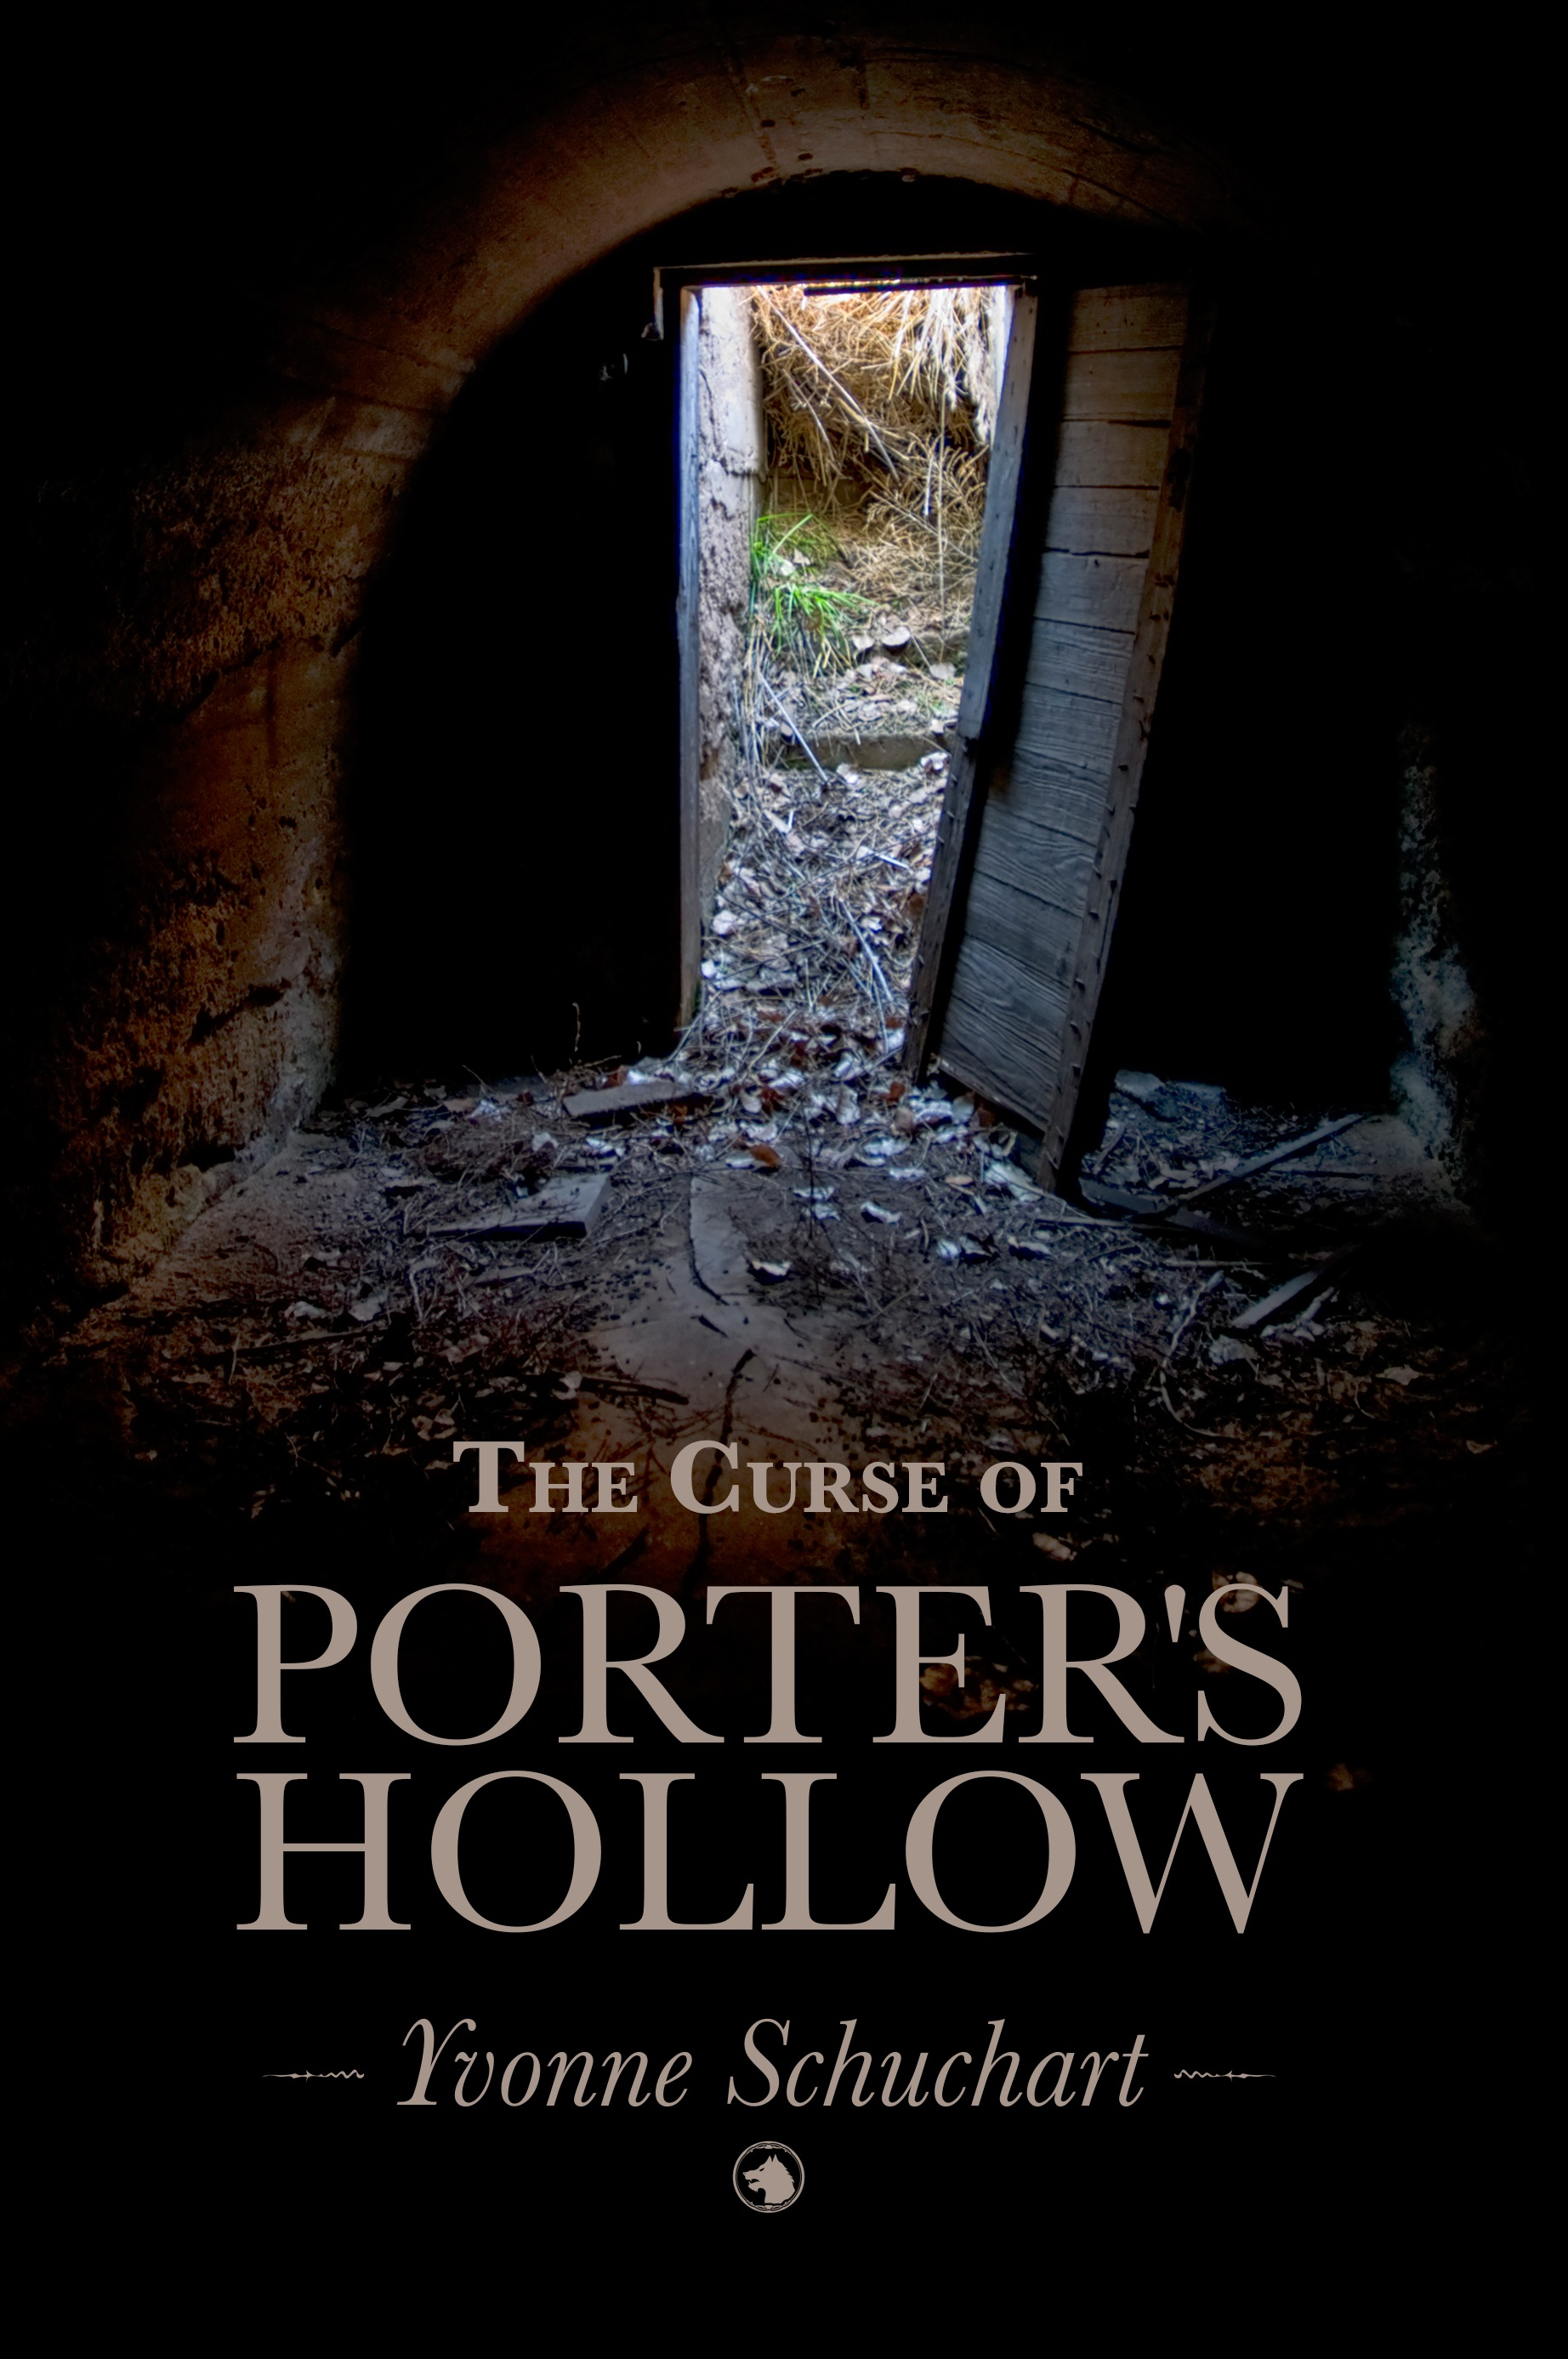 The Curse of Porter's Hollow by Yvonne Schuchart